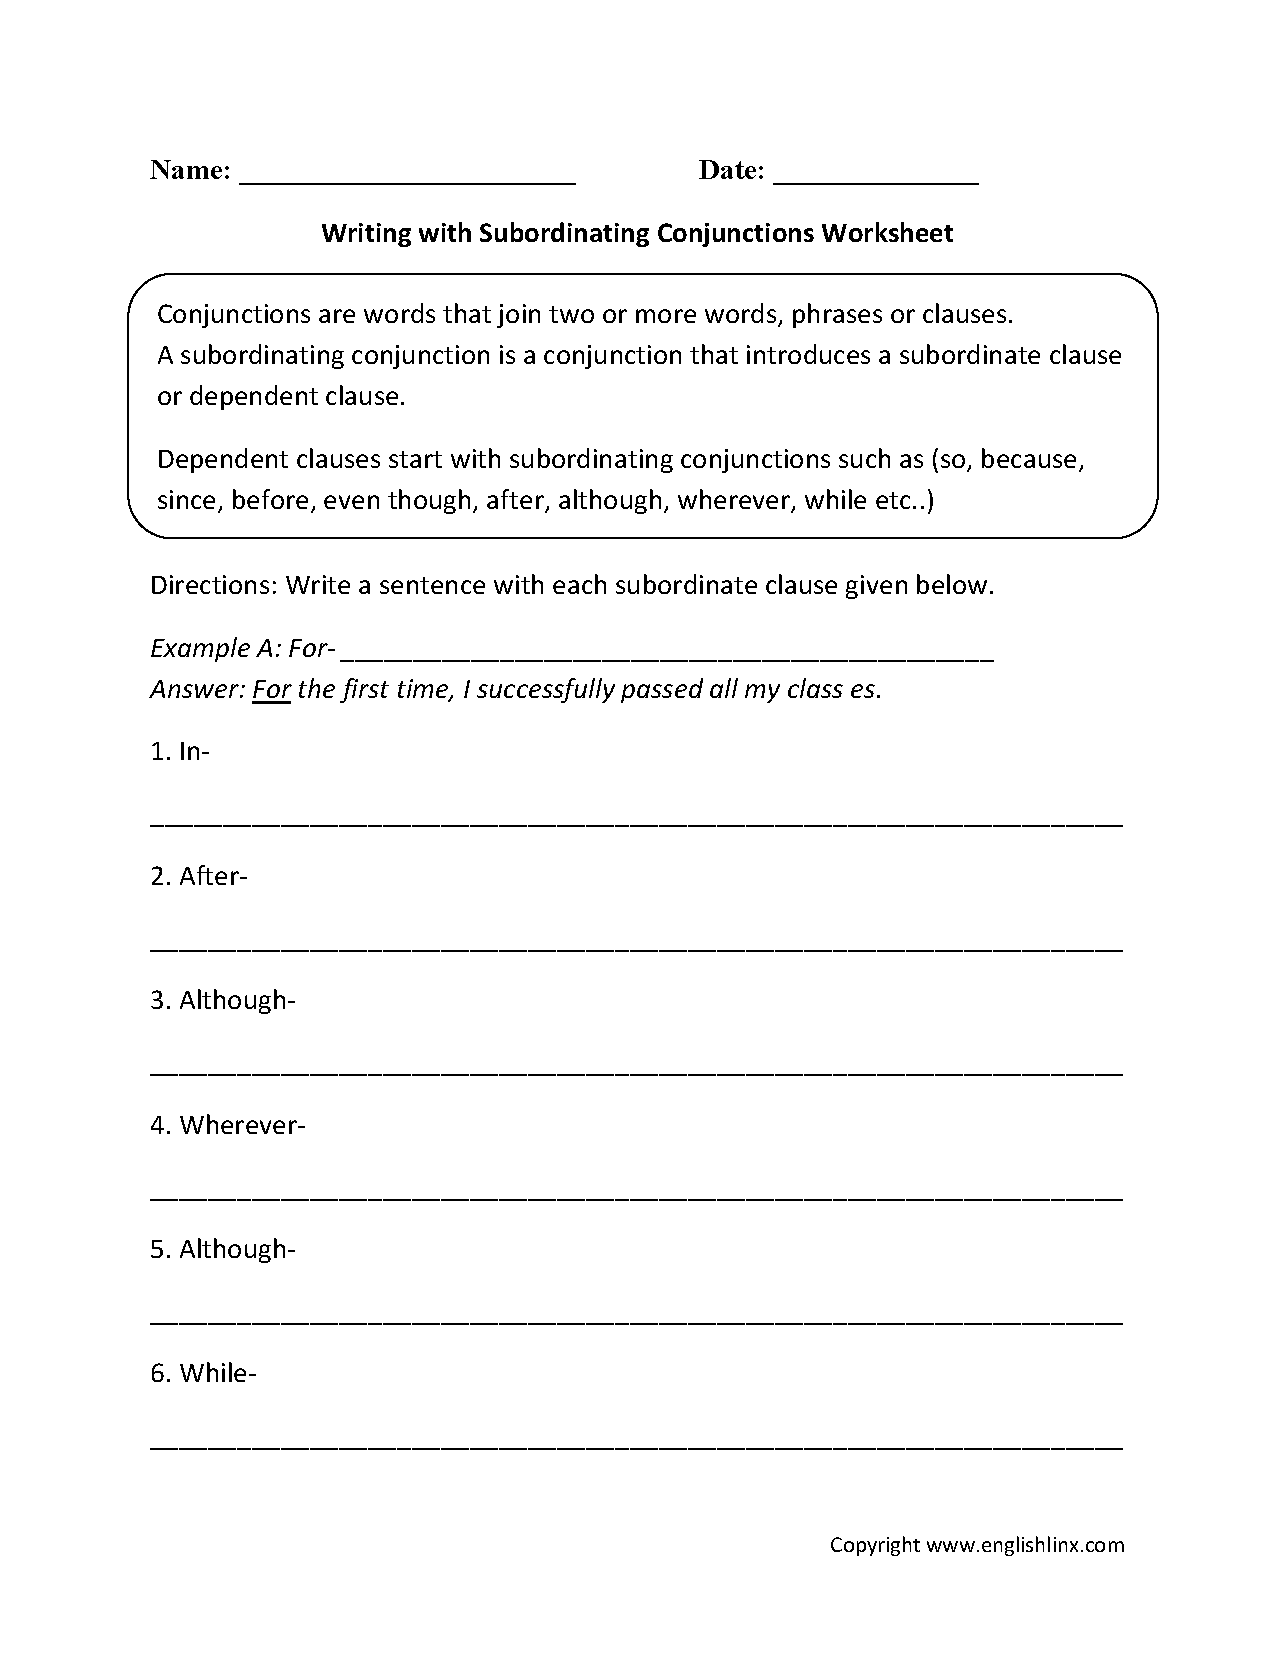 worksheet Subordinate Clause Worksheet conjunctions worksheets writing with subordinating worksheets